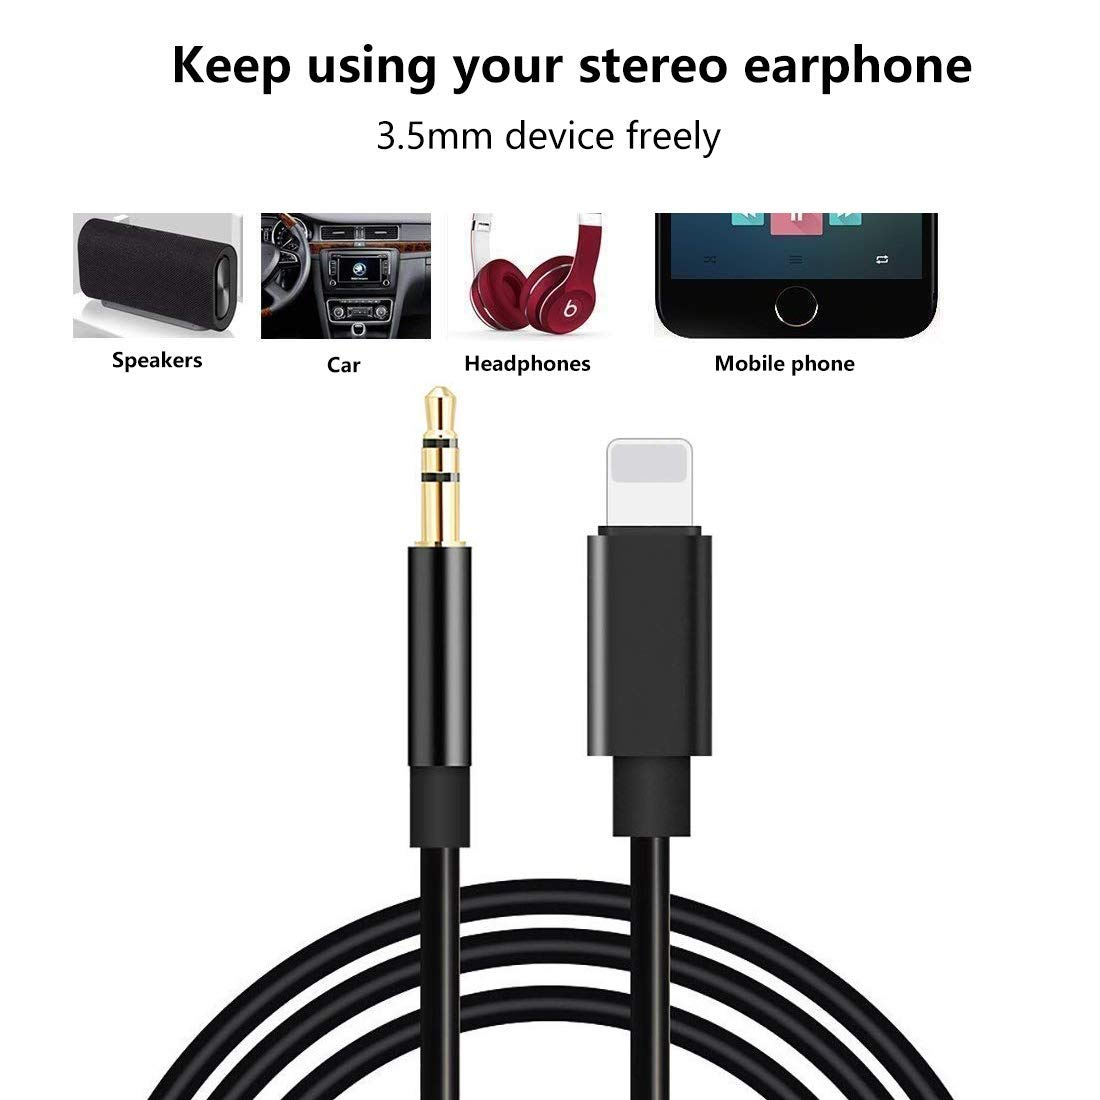 best sneakers 93821 204cd Aux Cord for iPhone XR, 3.5mm Aux Cable for iPhone 7/X/8/8 Plus/XS Max/X,  aux cable for Car Stereo or Speaker or Headphone Adapter, S10096